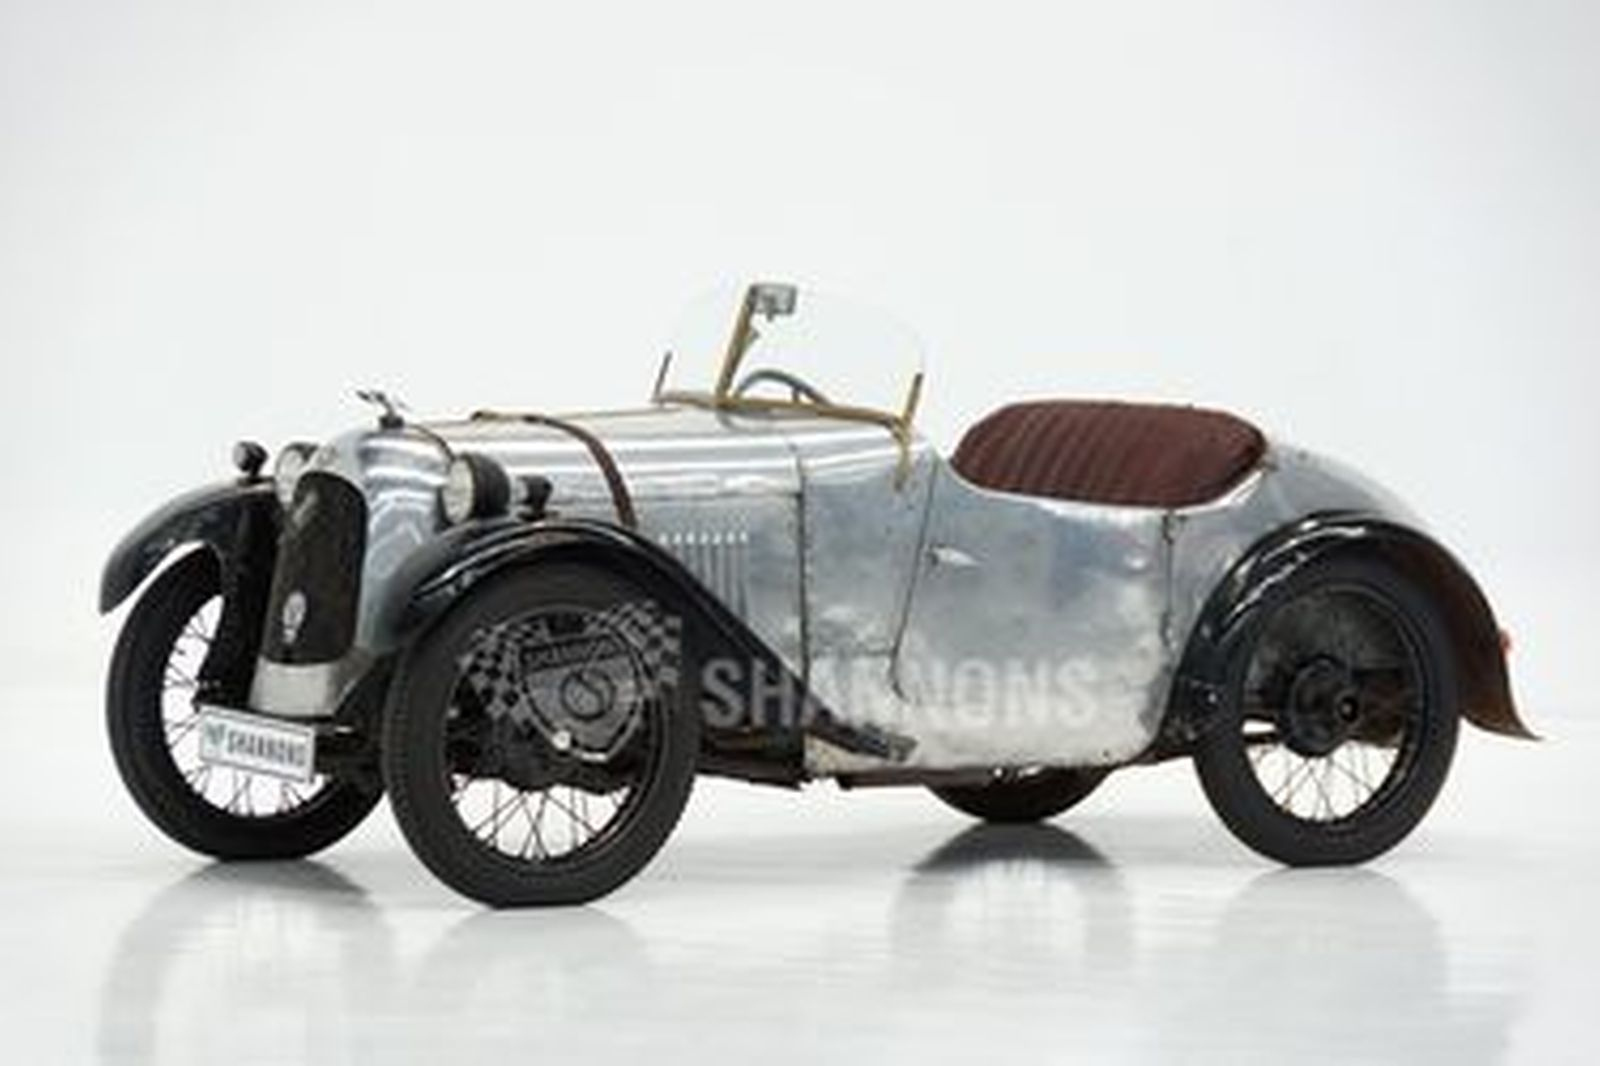 Austin 7 Swallow Roadster - From the 'Ian Cummins Collection'